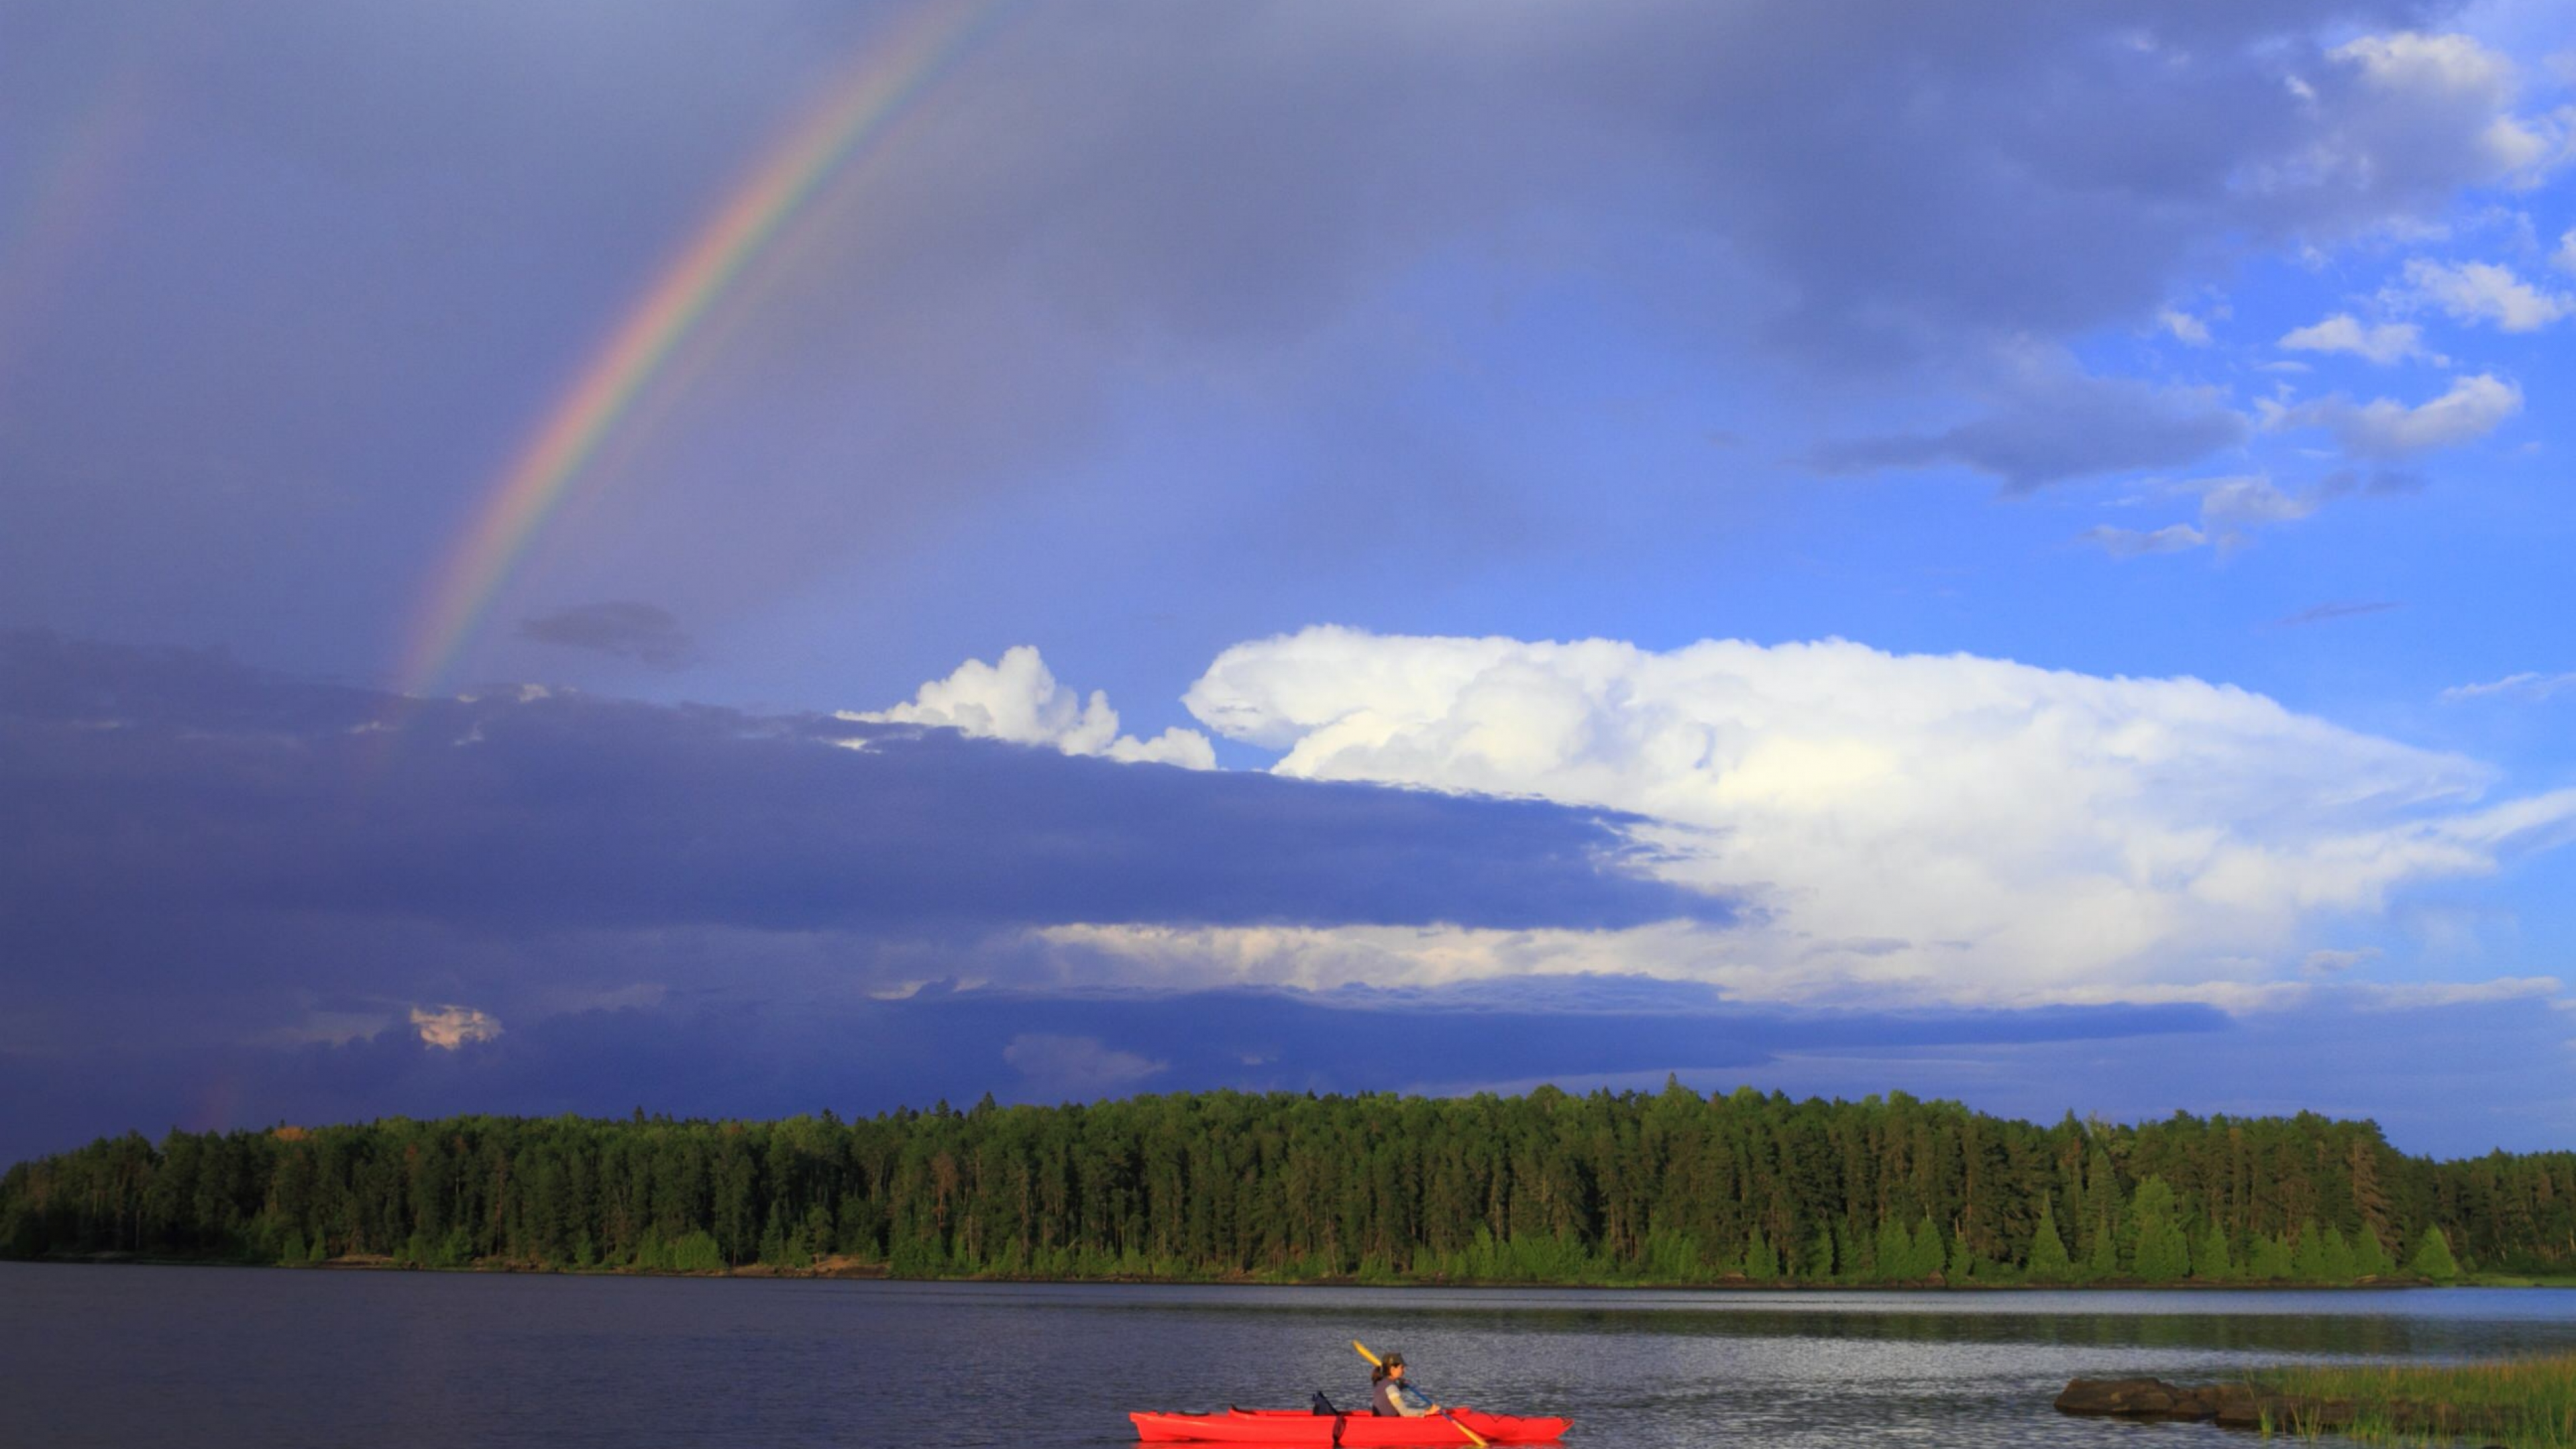 Canoeing on the lake at Voyageurs National Park, Minnesota, with a rainbow